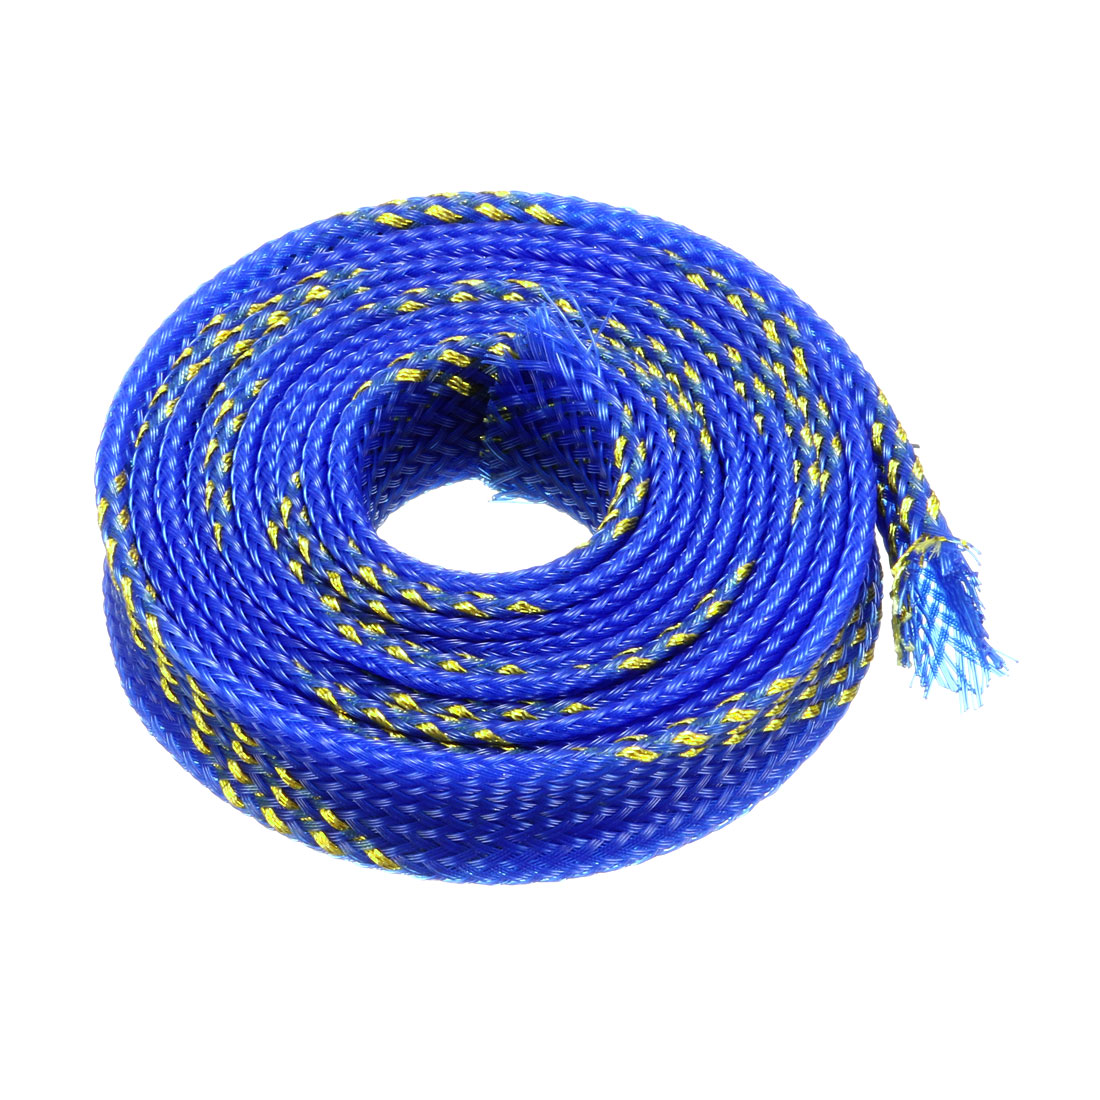 10mm Dia Tight Braided PET Expandable Sleeving Cable Wrap Sheath Golden Blue 1M Length